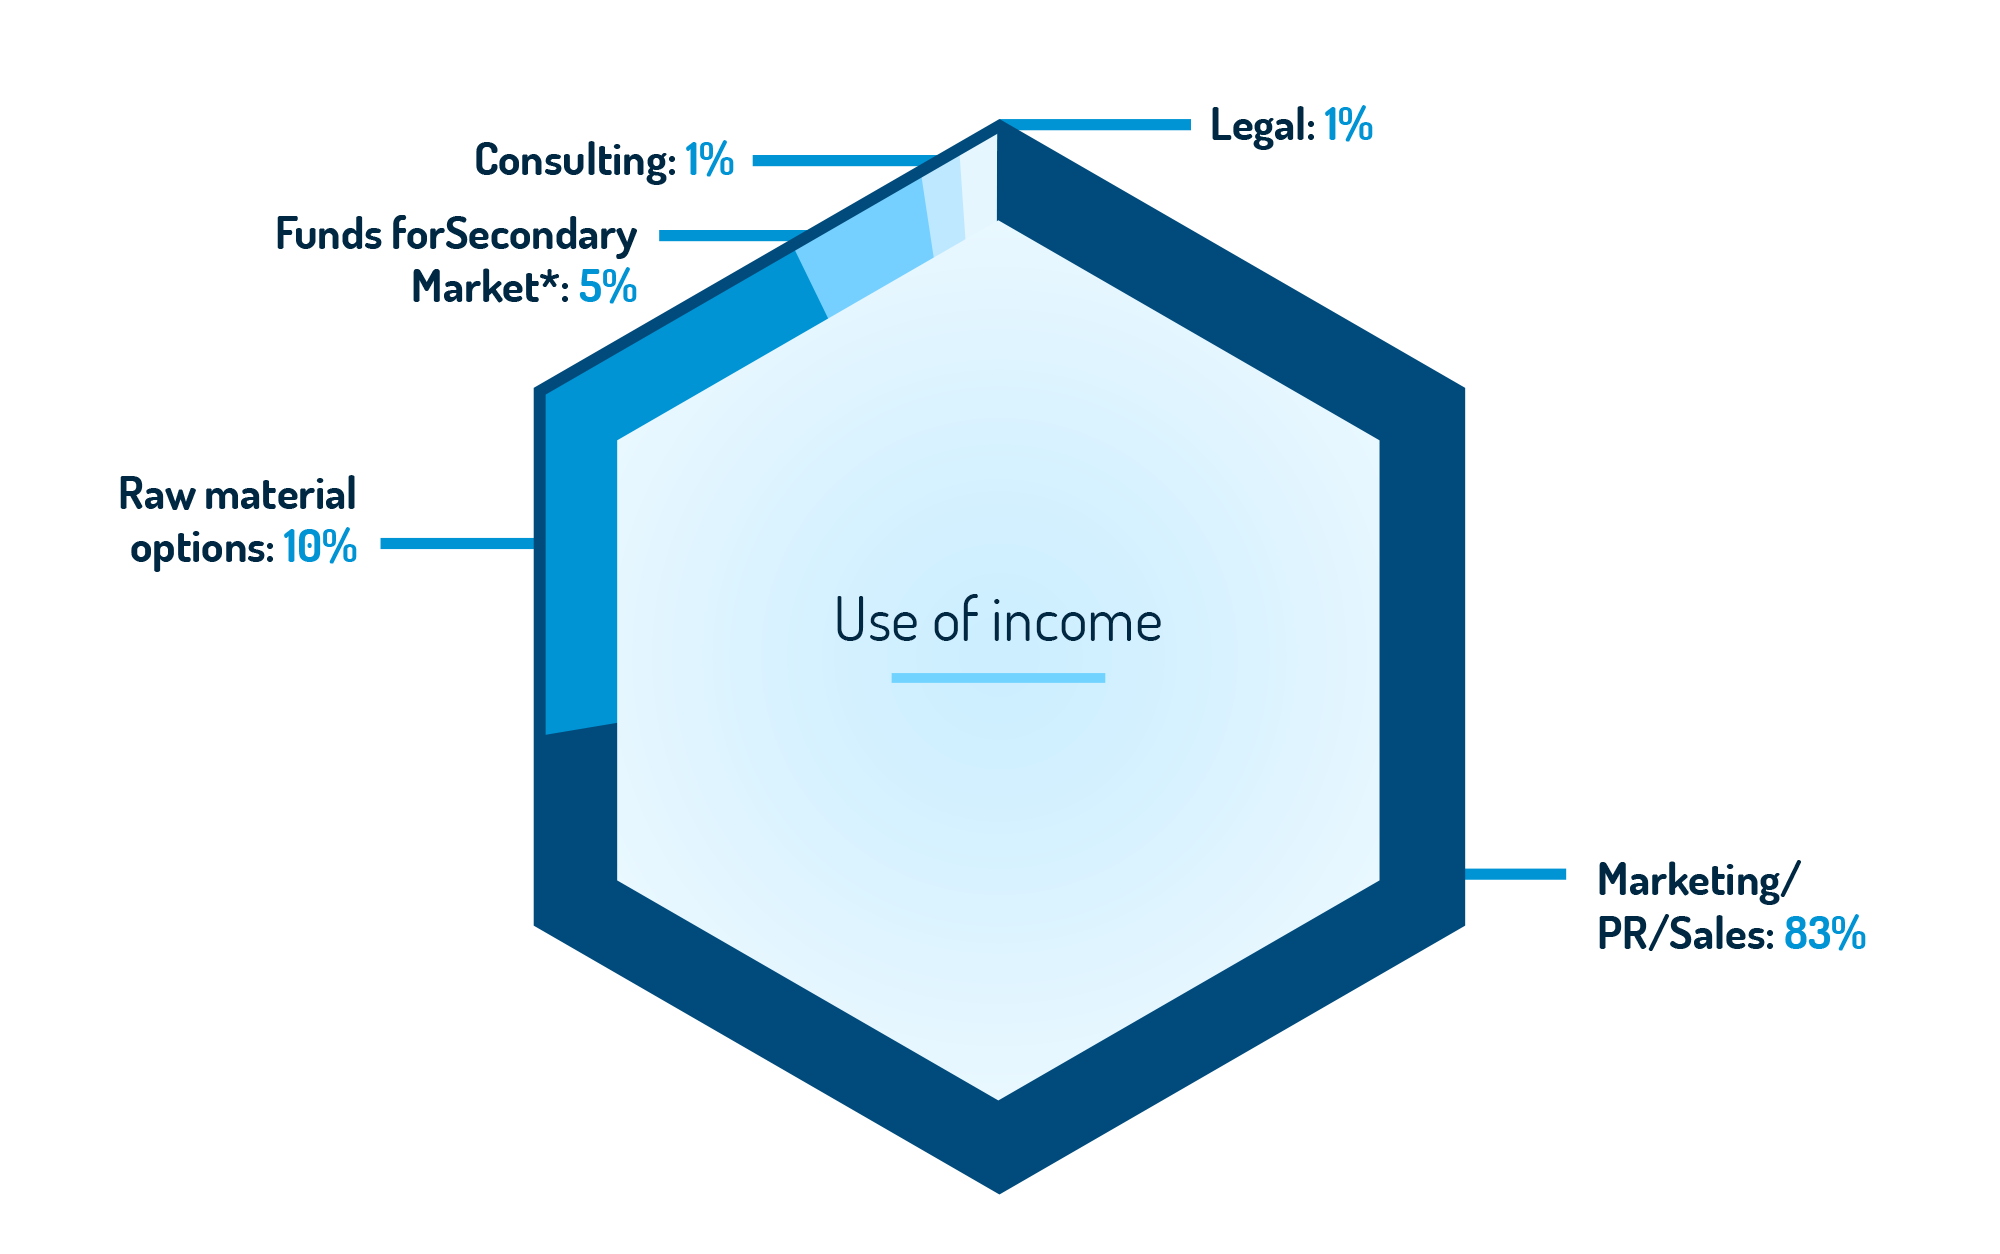 Use of OiCOiN and income